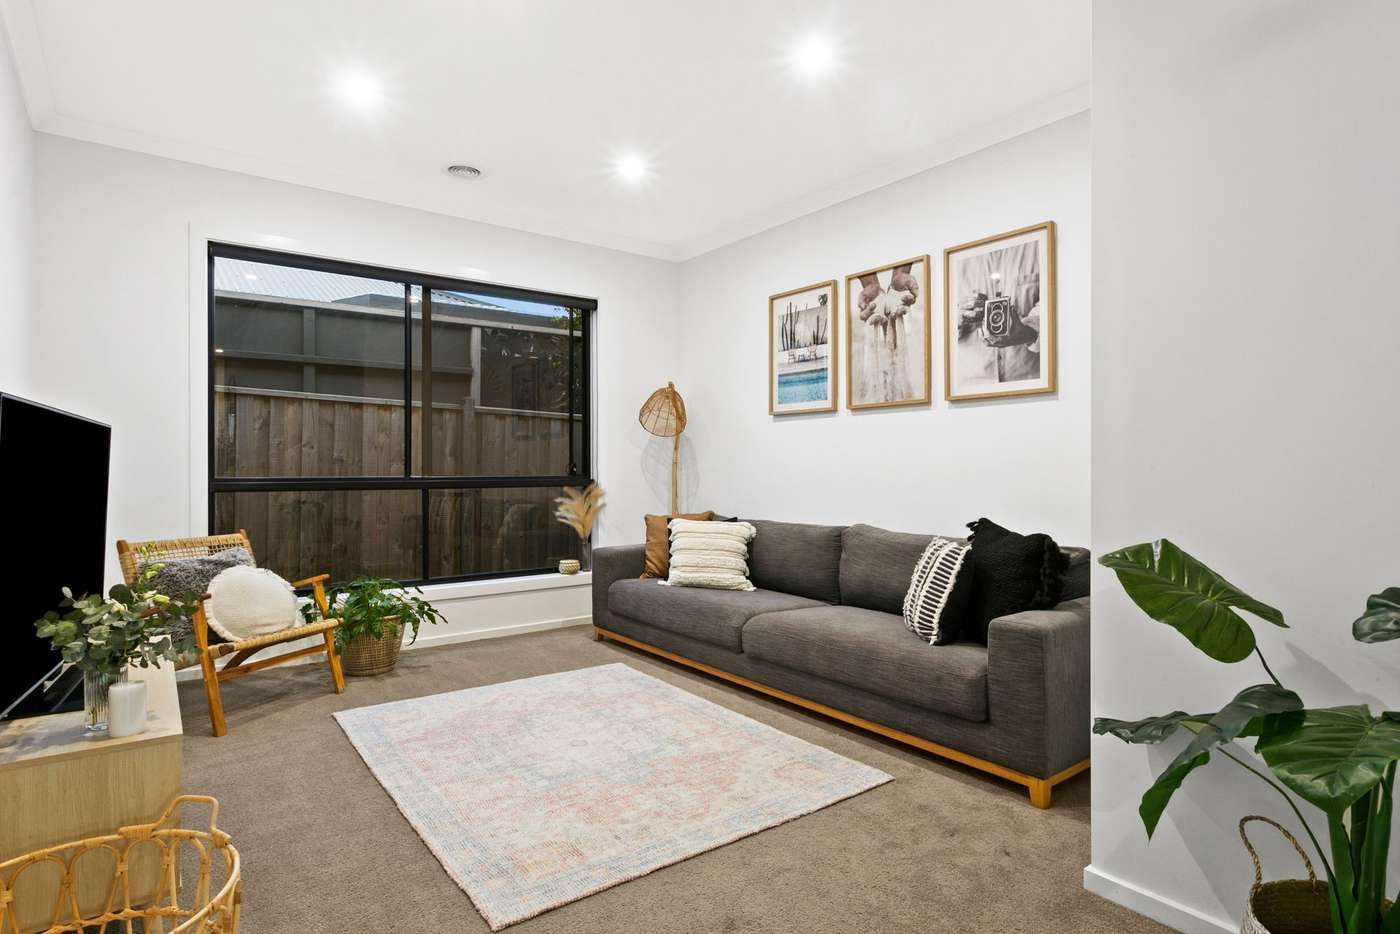 Fifth view of Homely house listing, 22-24 Stonebridge Road, Drysdale VIC 3222